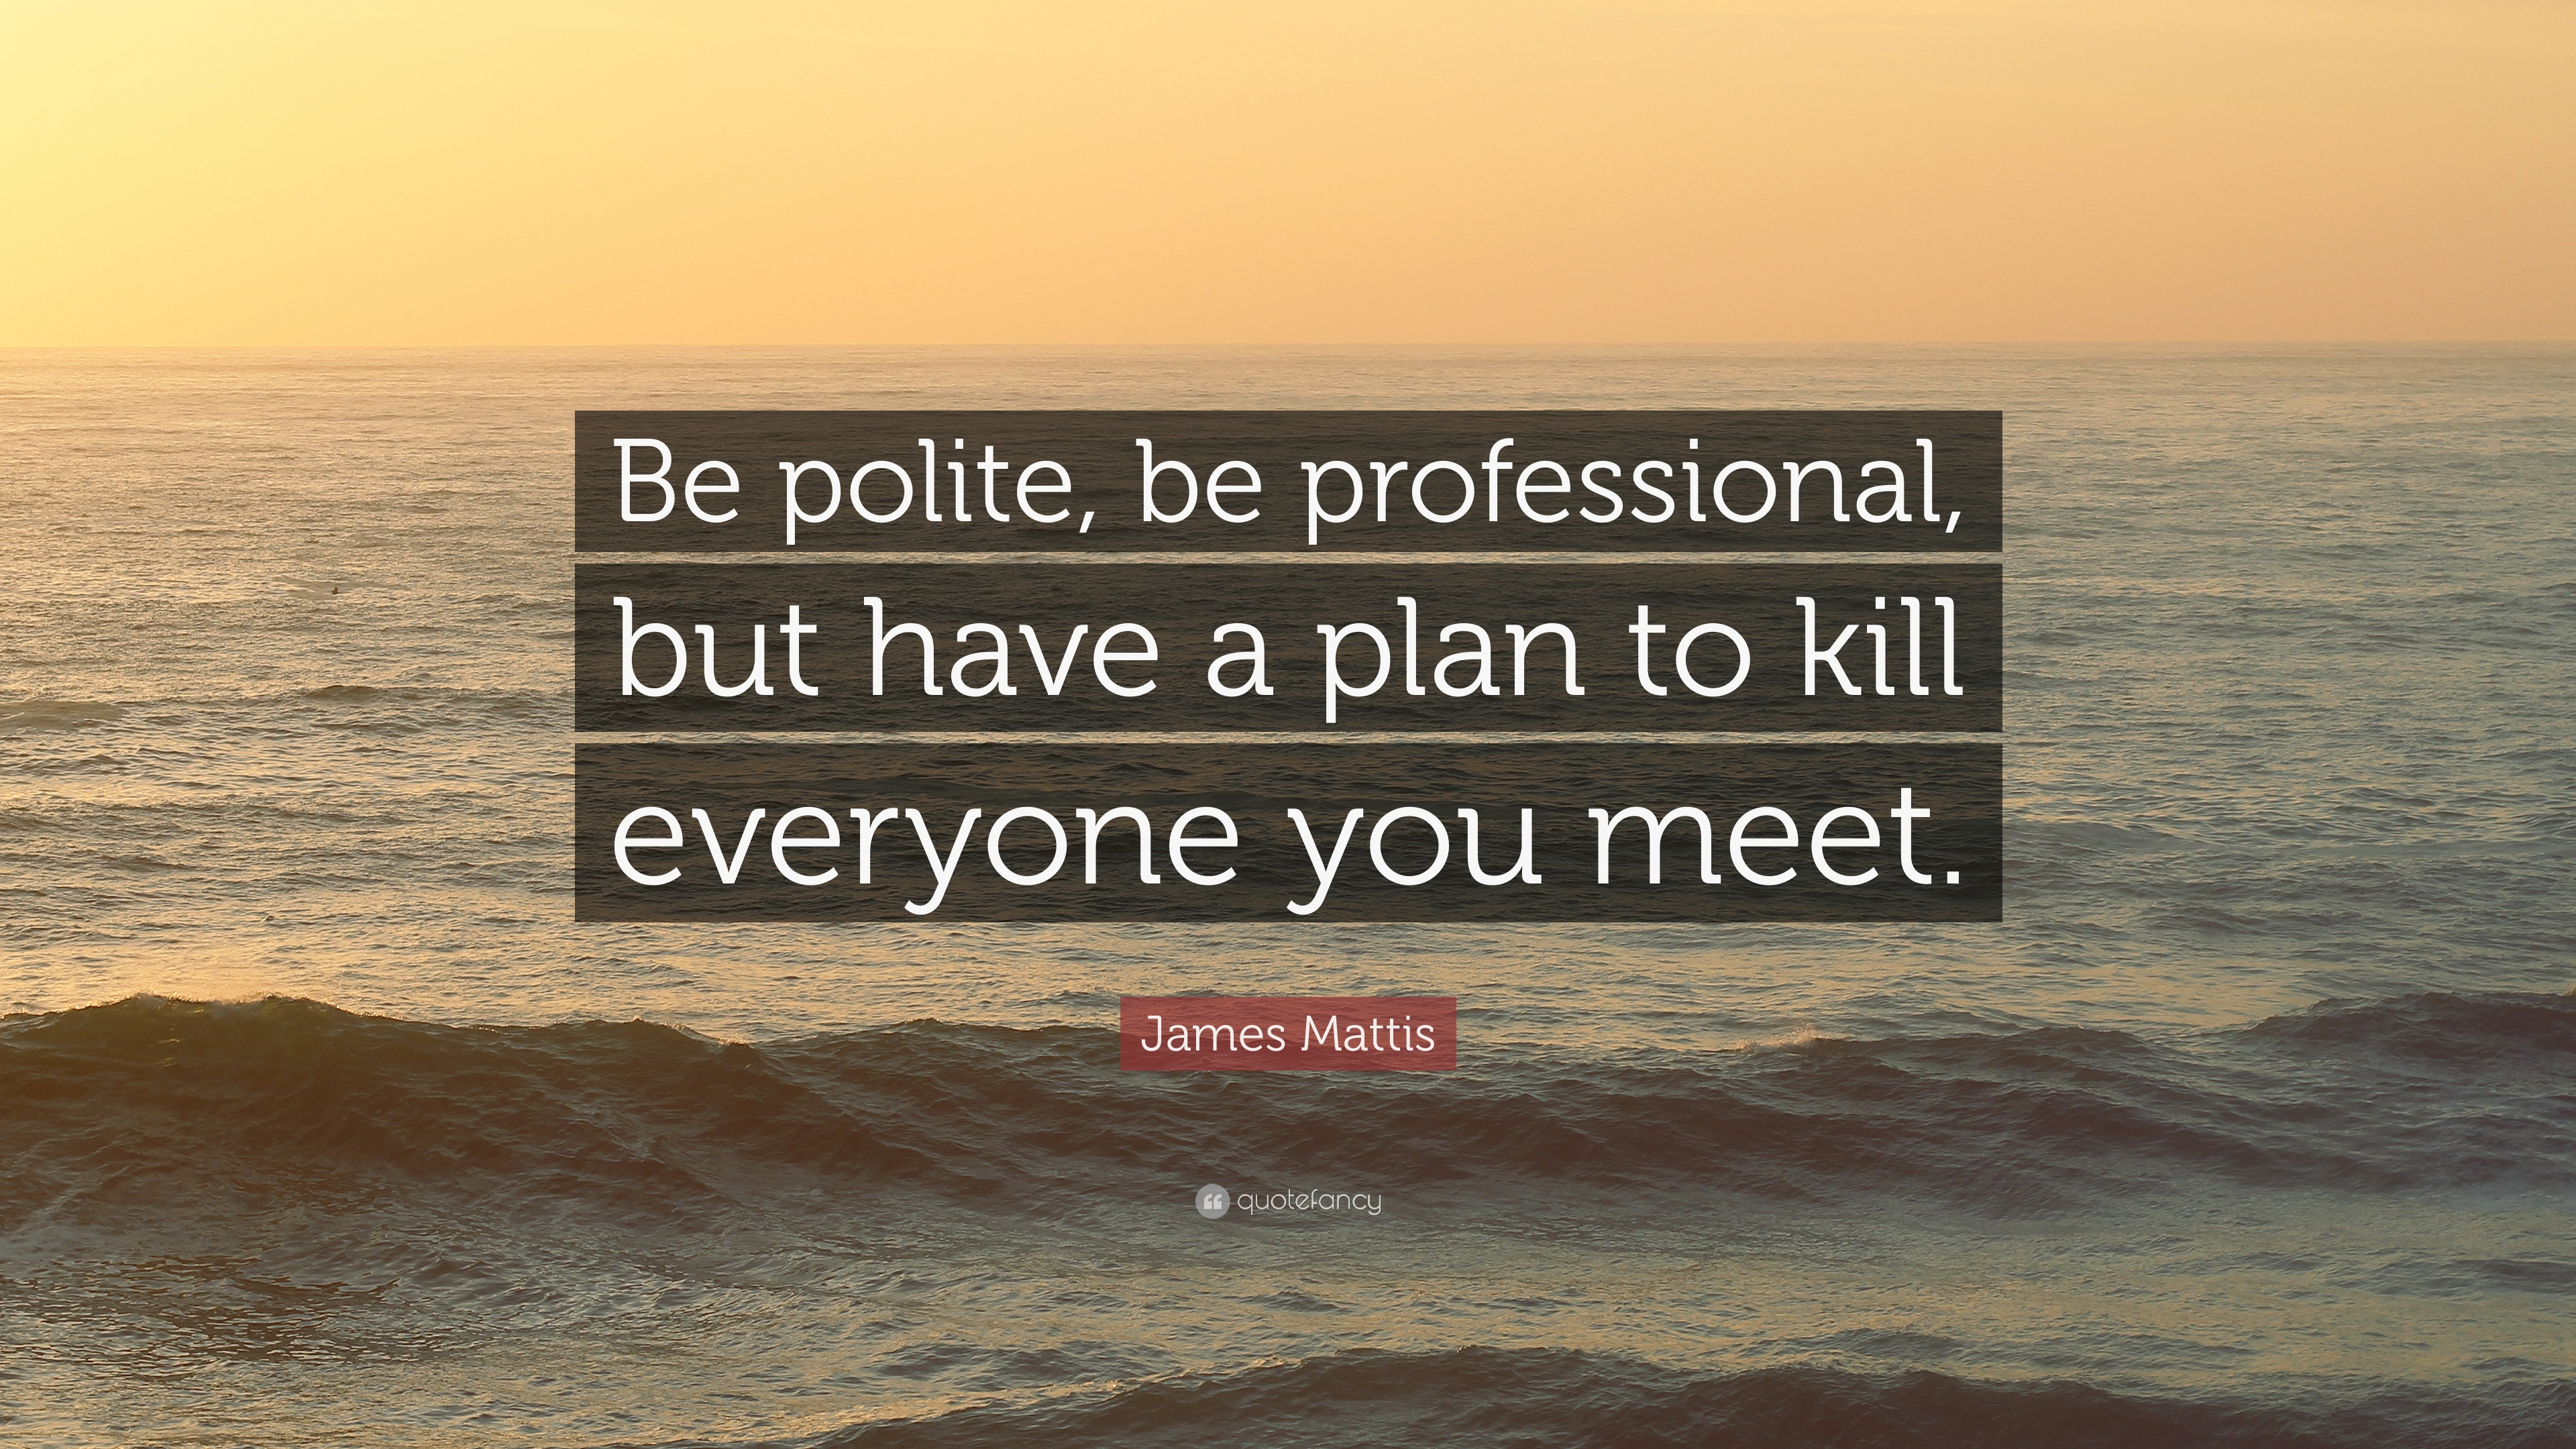 james mattis quote be polite be professional but have a plan to